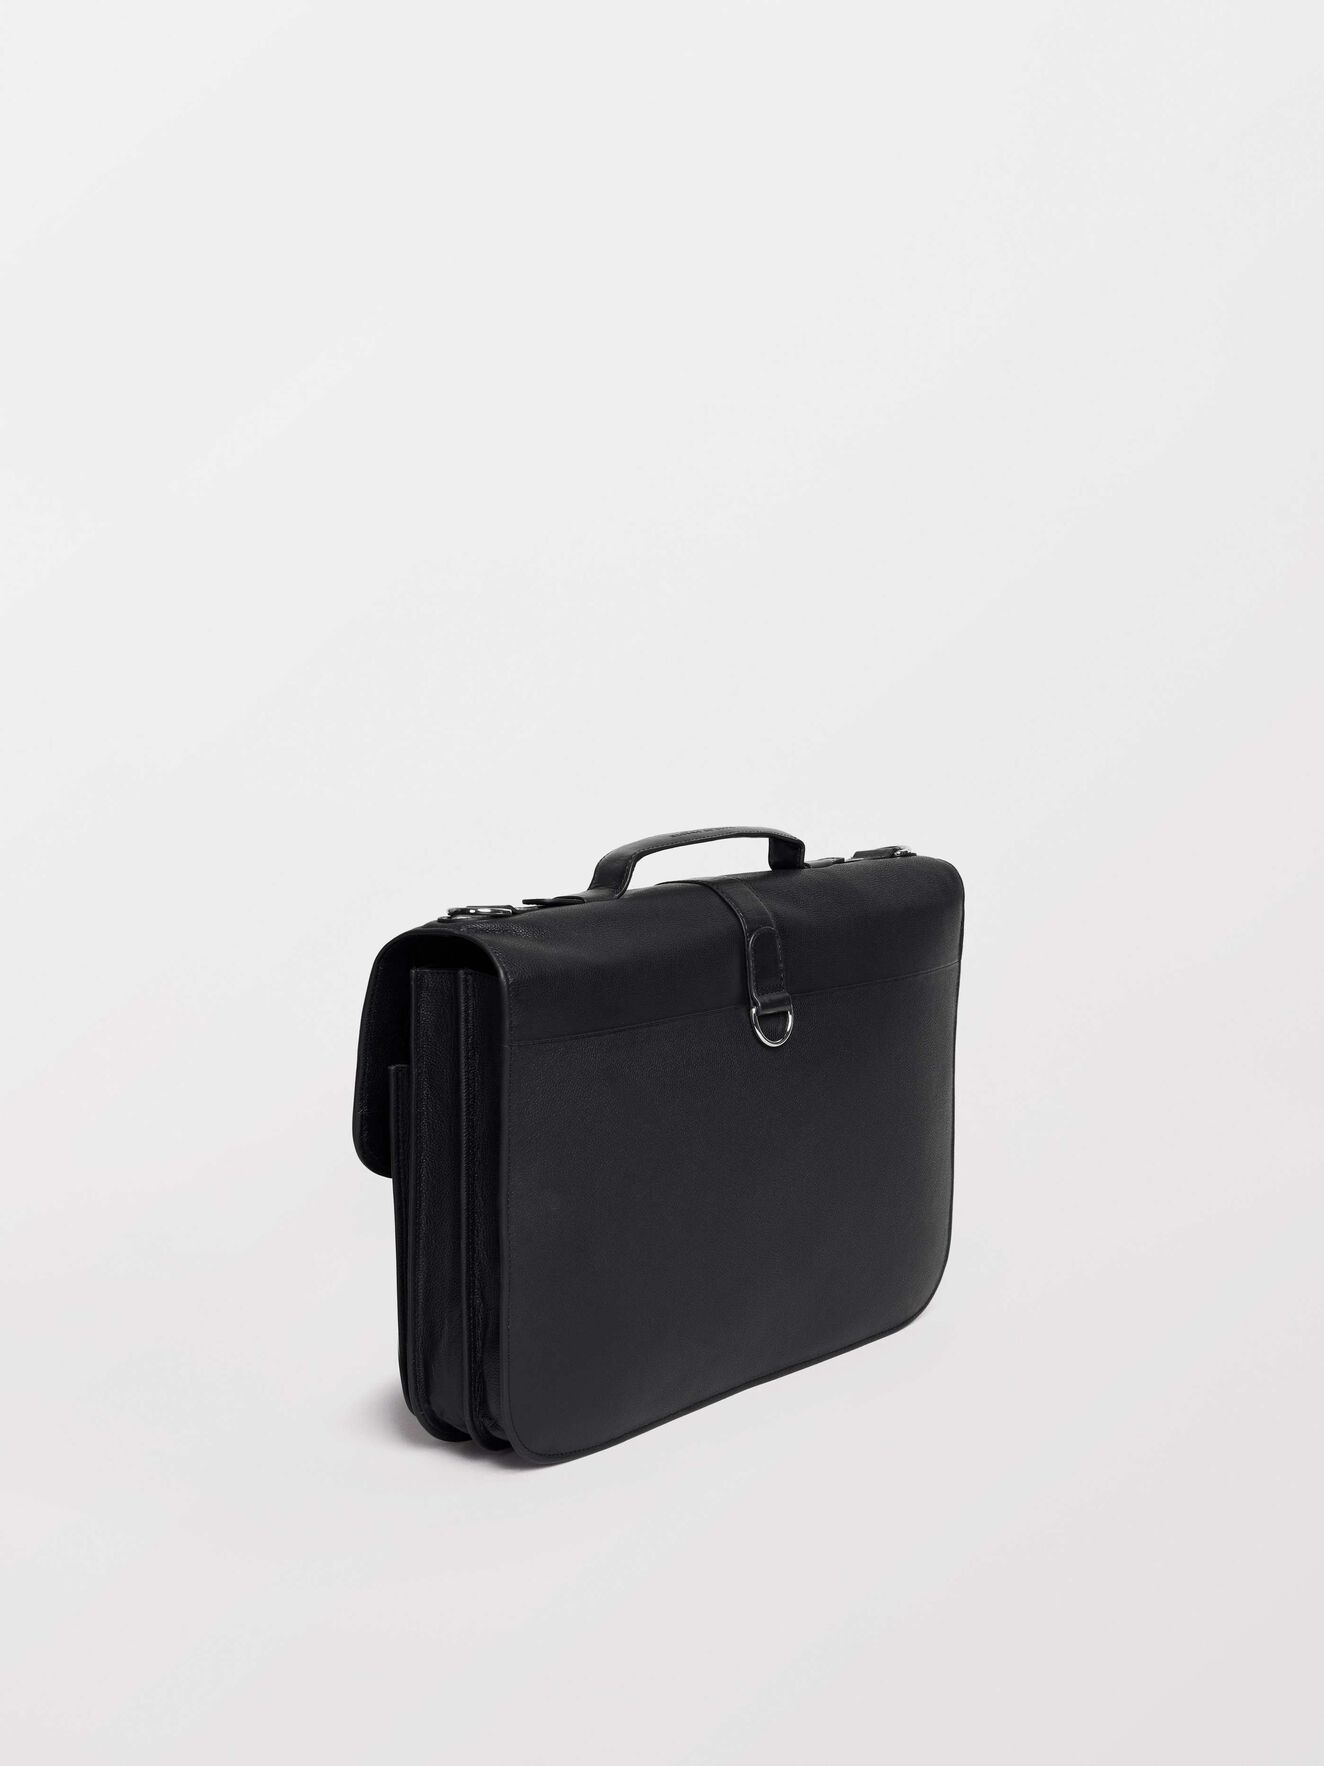 1ba6560e ... Lucha Briefcase in Black from Tiger of Sweden ...